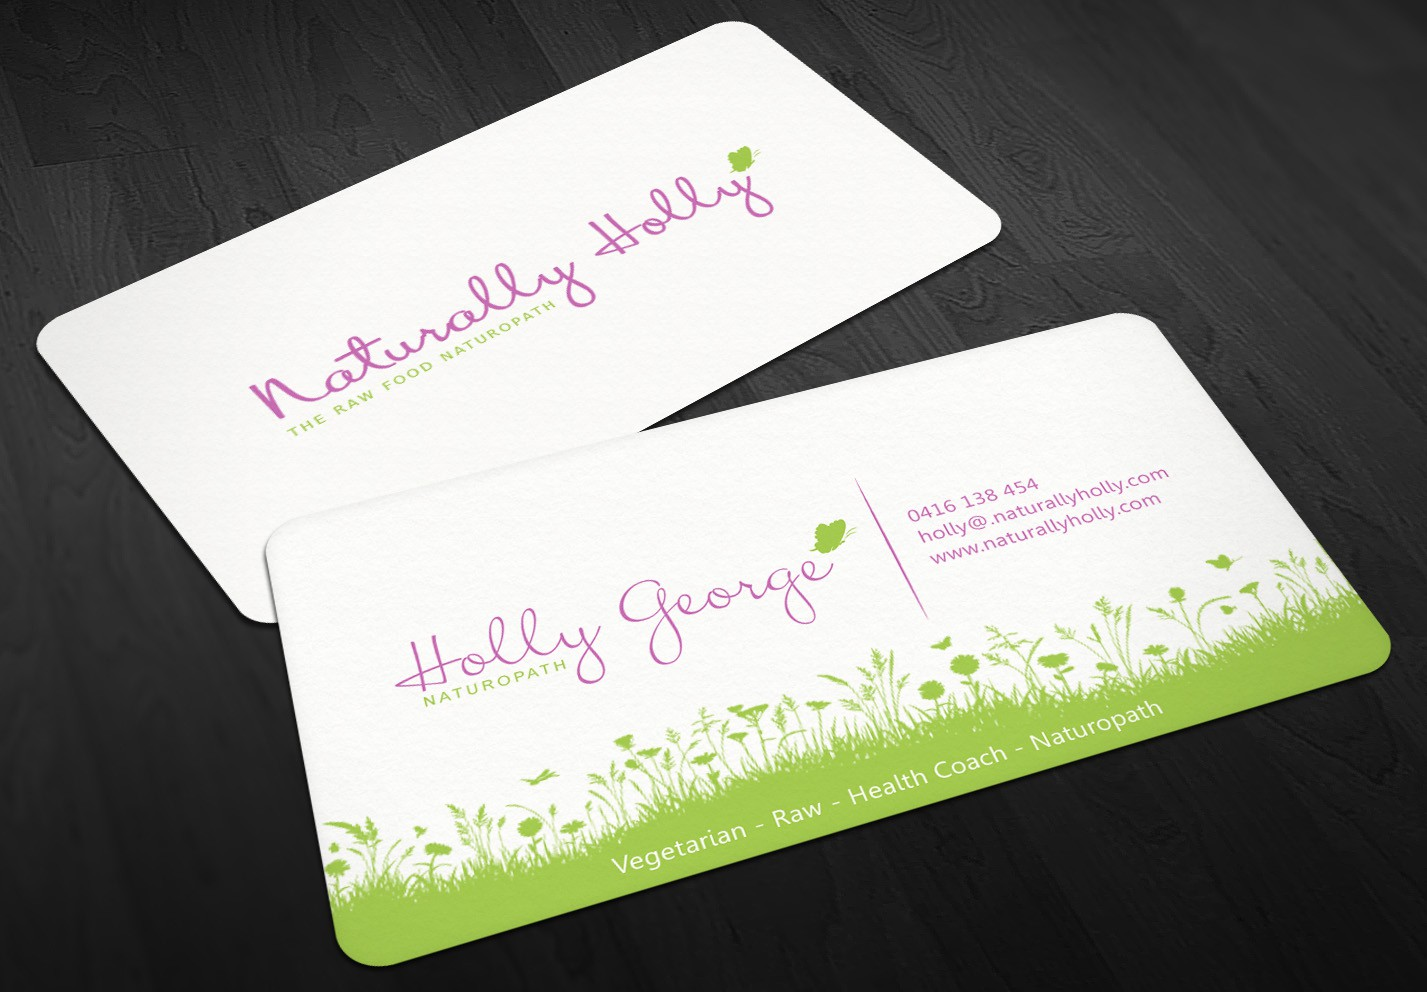 Help create a healthy life coach business card